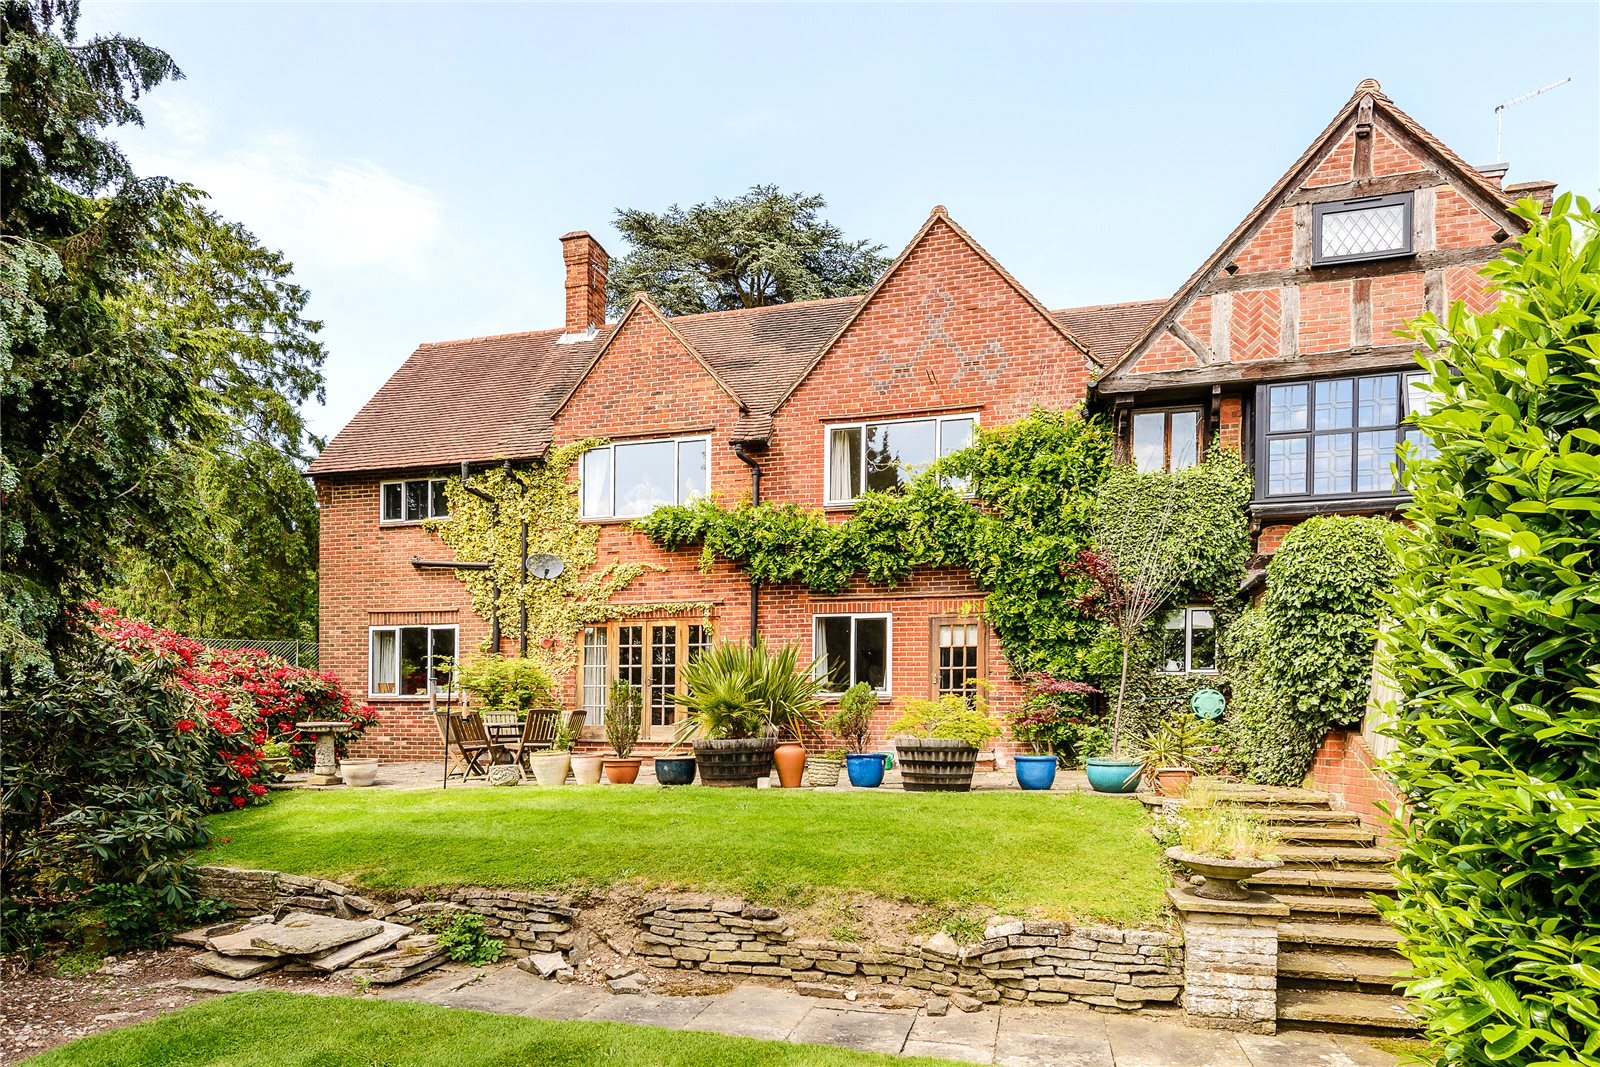 Additional photo for property listing at Fulmer Lane, Fulmer, Buckinghamshire, SL3 Fulmer, England